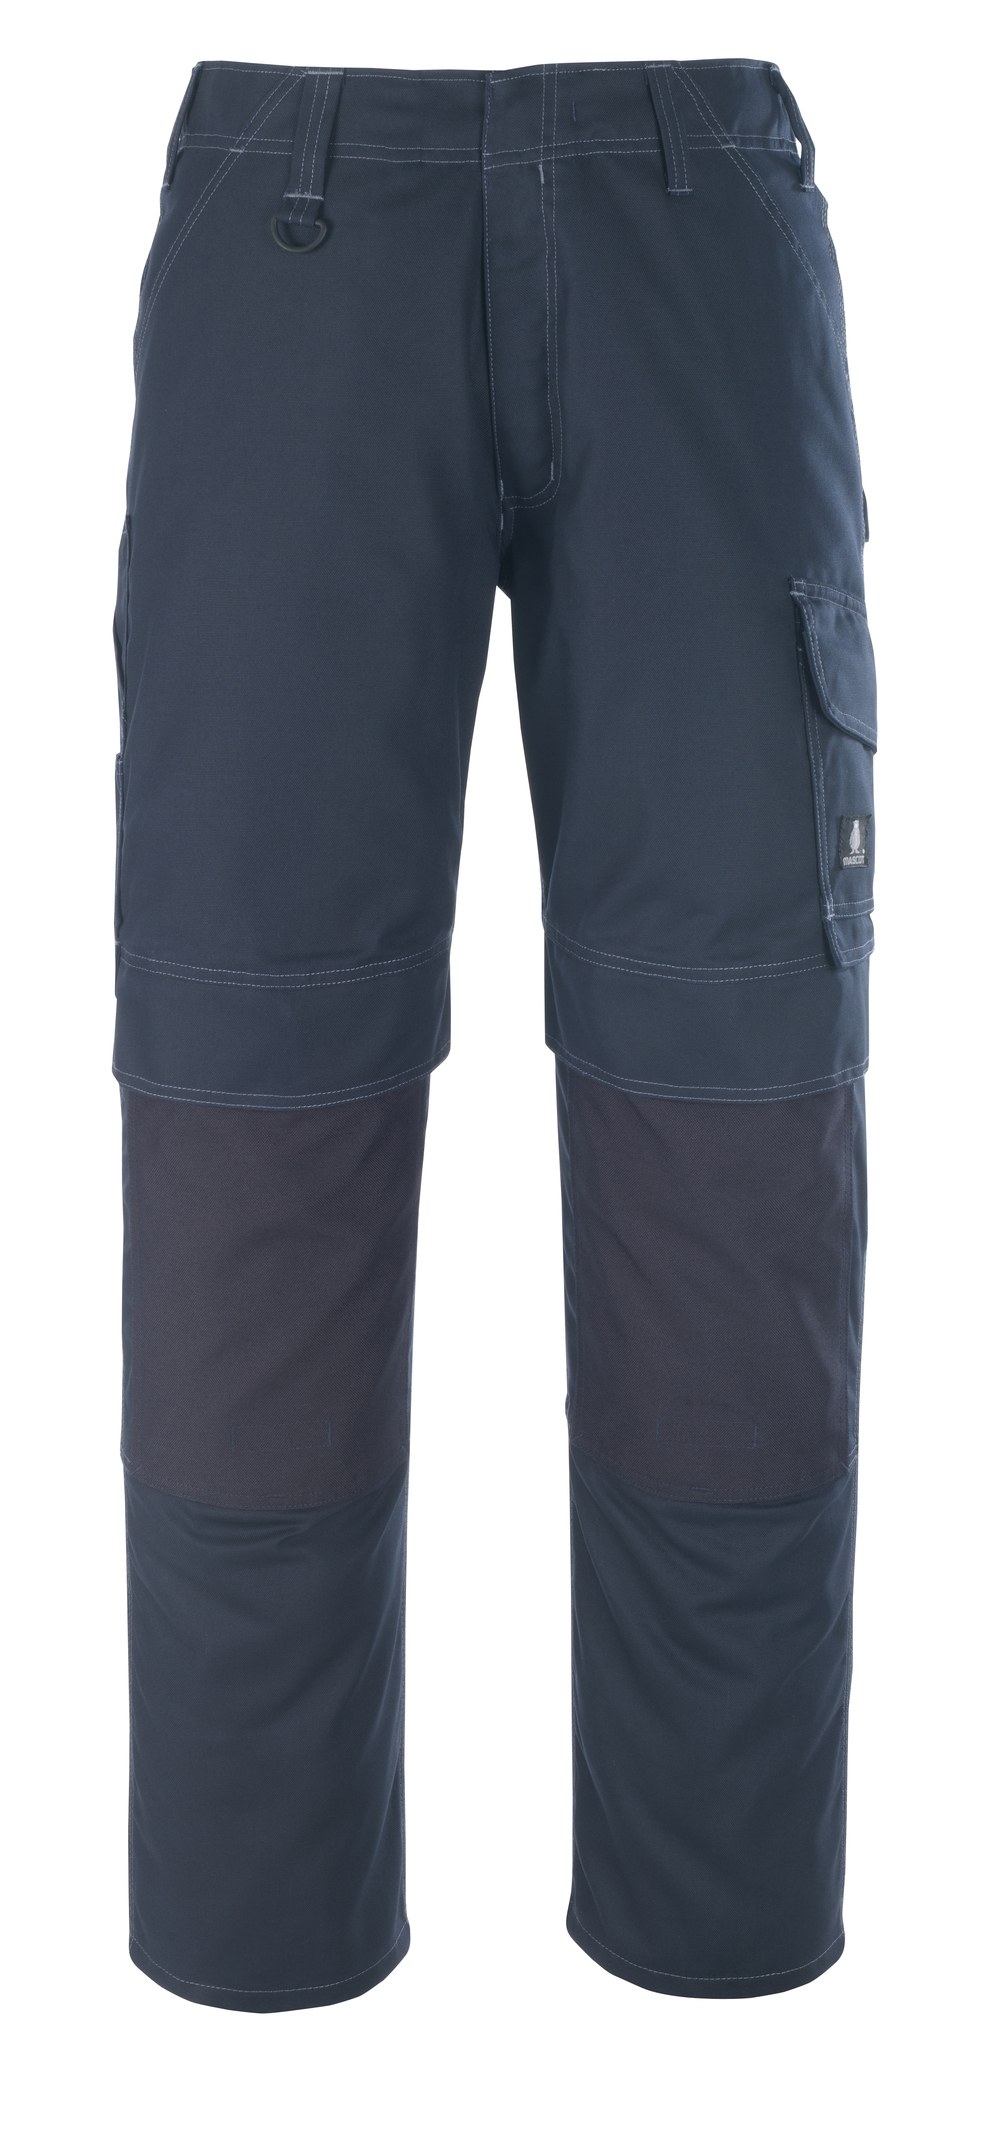 10179-154-010 Trousers with kneepad pockets - dark navy